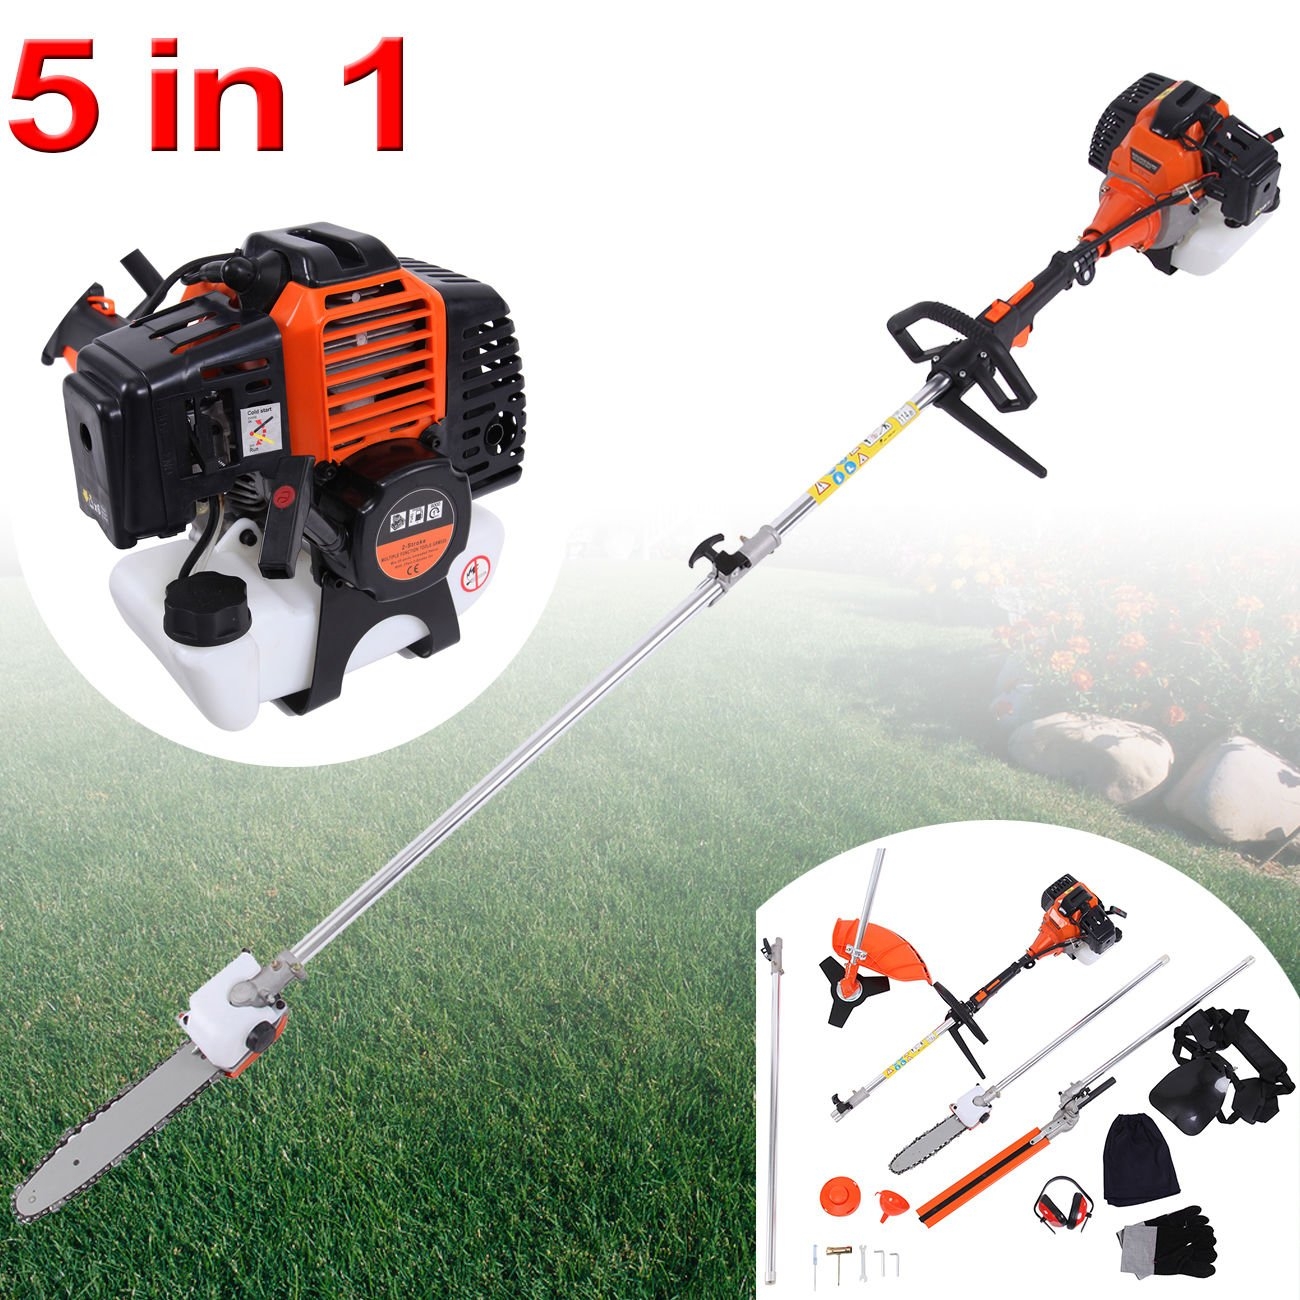 Iglobalbuy 52cc 5 in 1 Multifunction Grass Cutter Trimmer Brush Cutter Hedge Trimmer Chainsaw Earmuffs W/ CE certificate